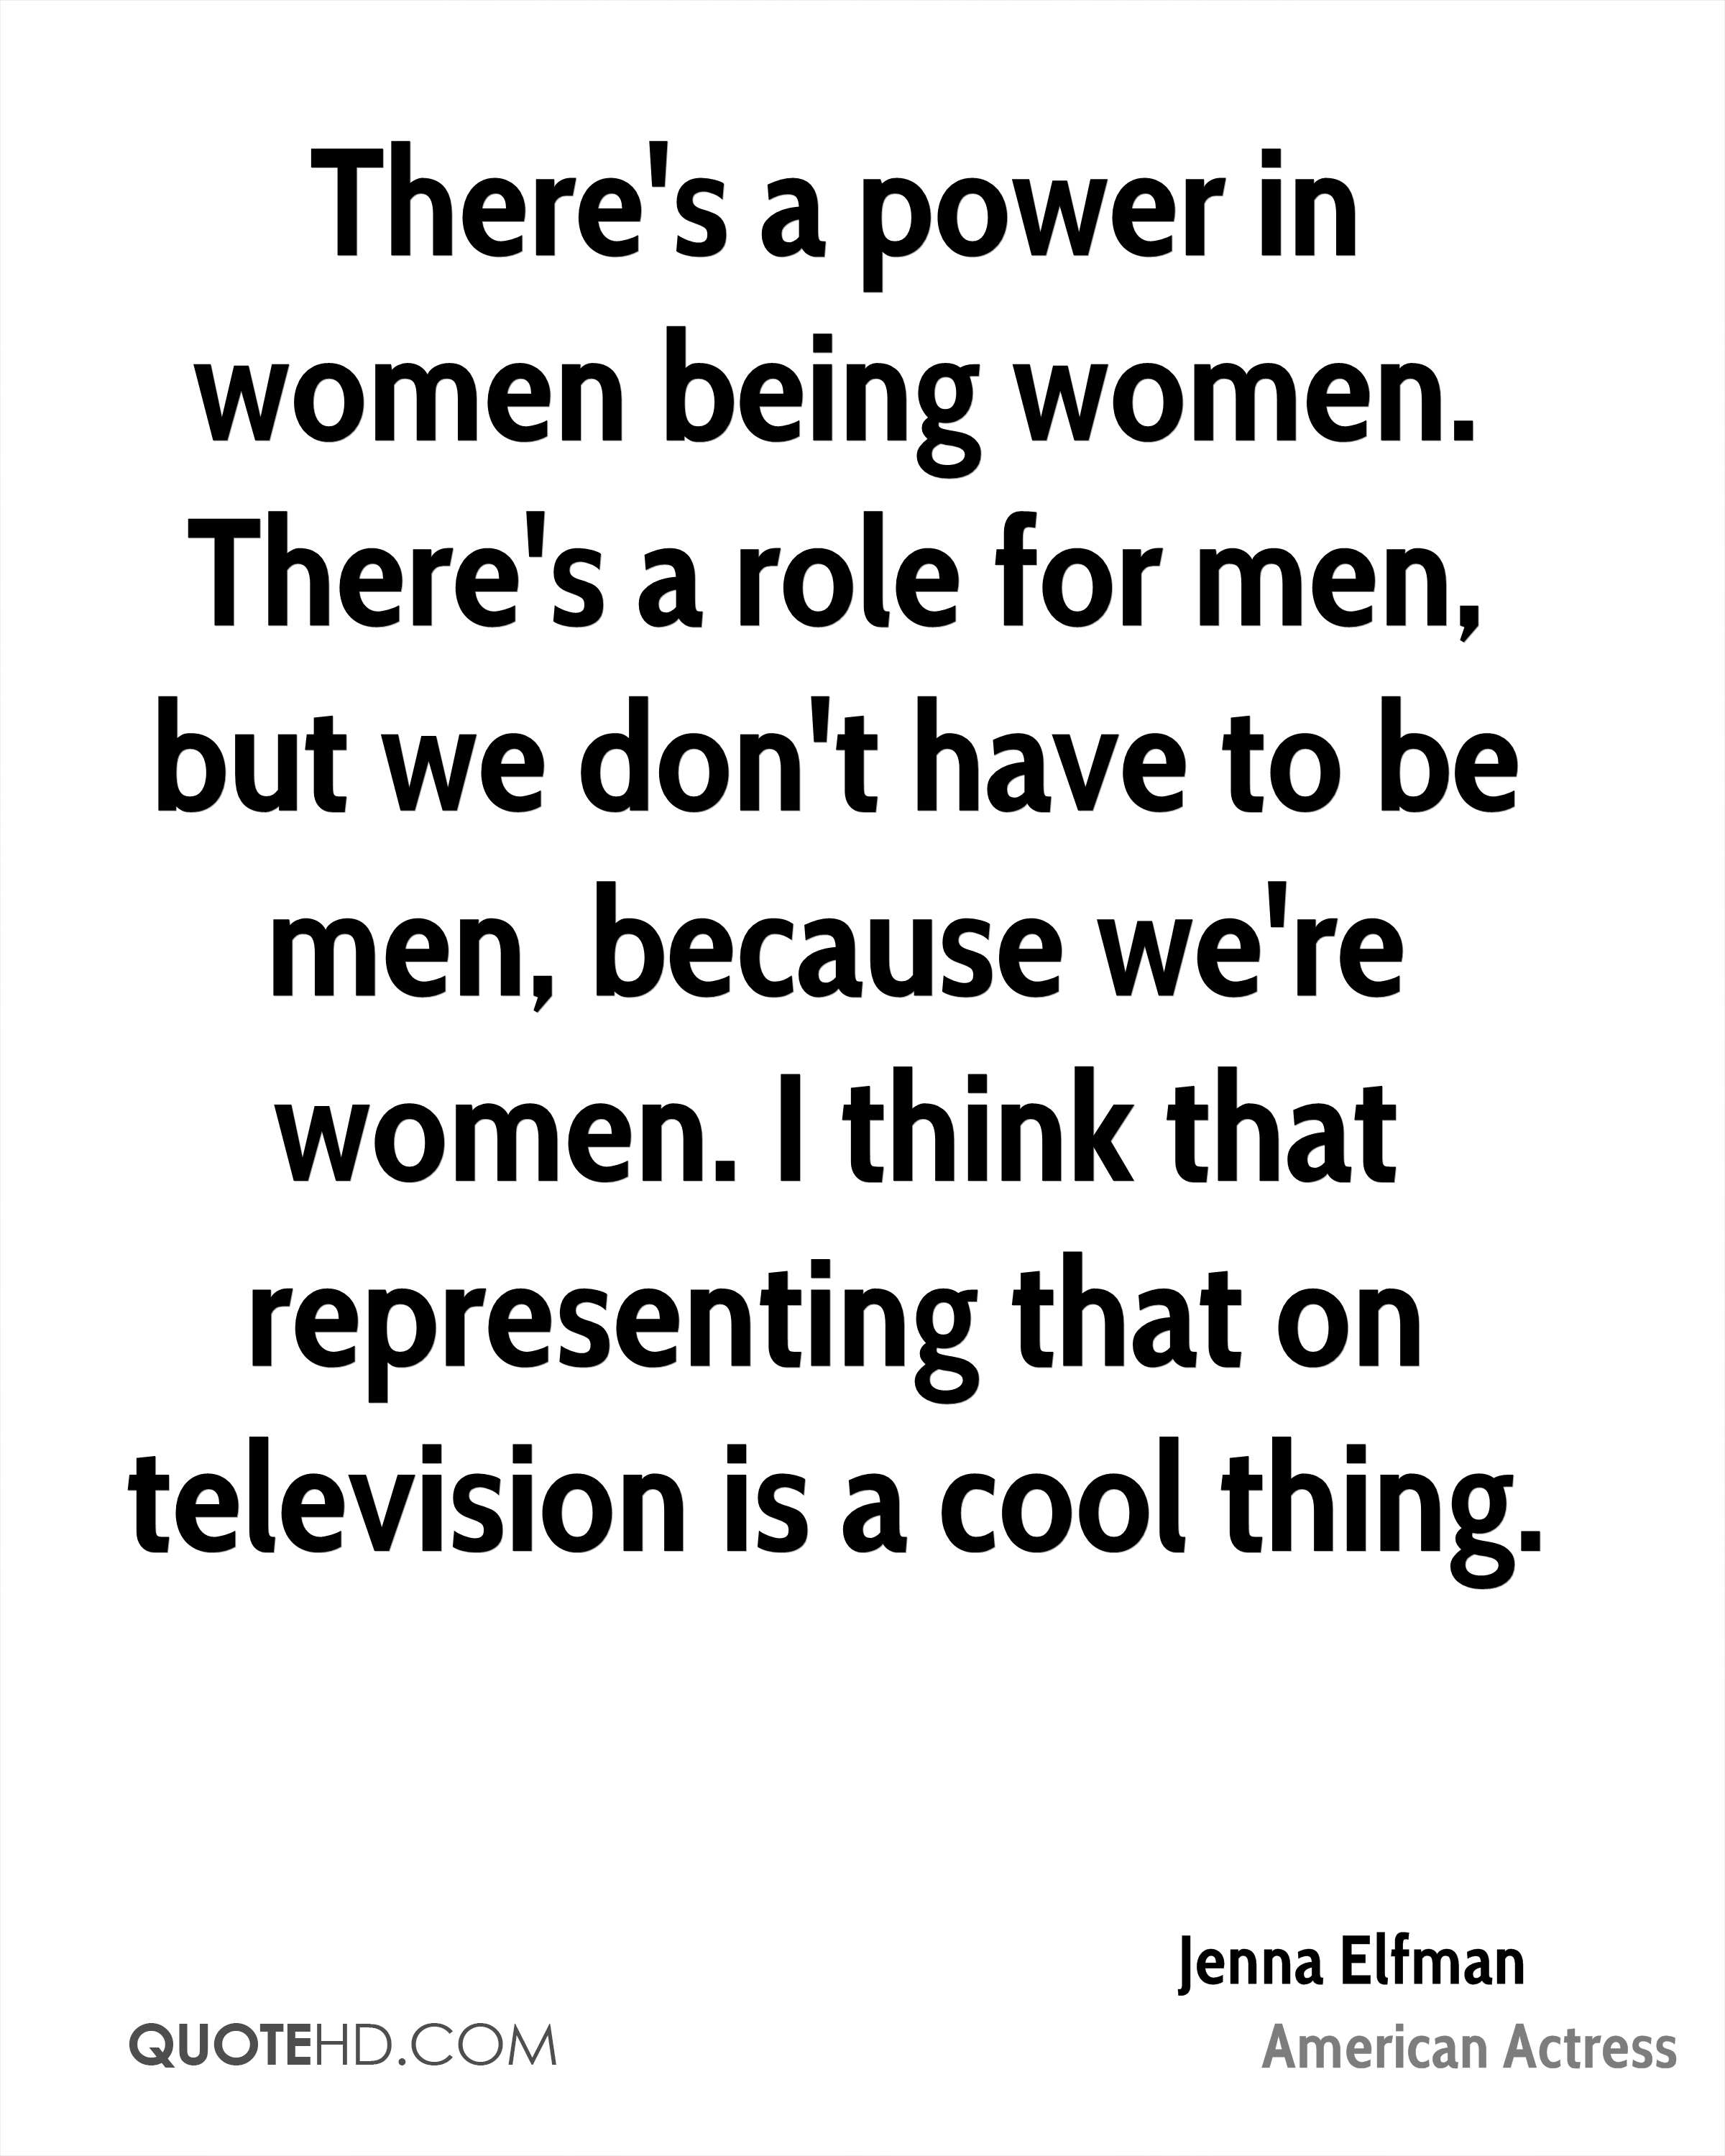 There's a power in women being women. There's a role for men, but we don't have to be men, because we're women. I think that representing that on television is a cool thing.